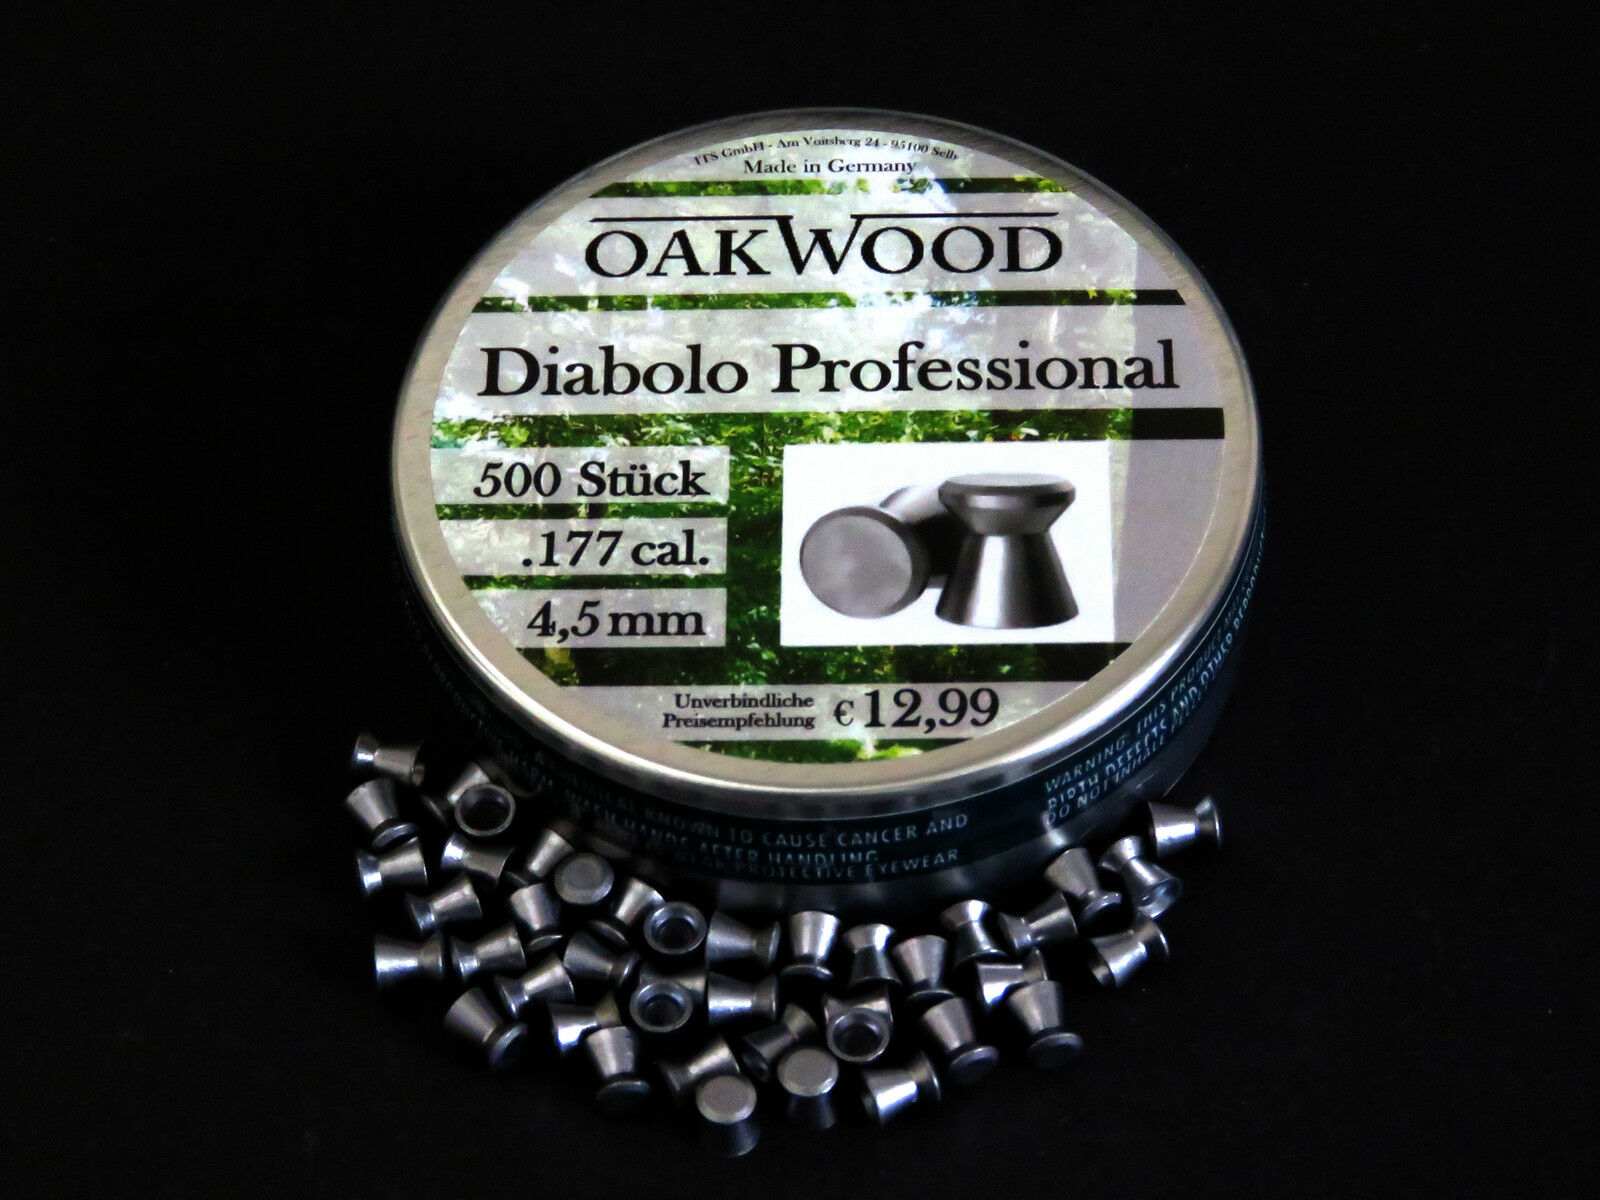 OAKWOOD PROFESSIONAL DIABOLOS -LUFTGEWEHR-4,5MM- STAFFELPREIS-MADE STAFFELPREIS-MADE STAFFELPREIS-MADE IN GERMANY 141c7e